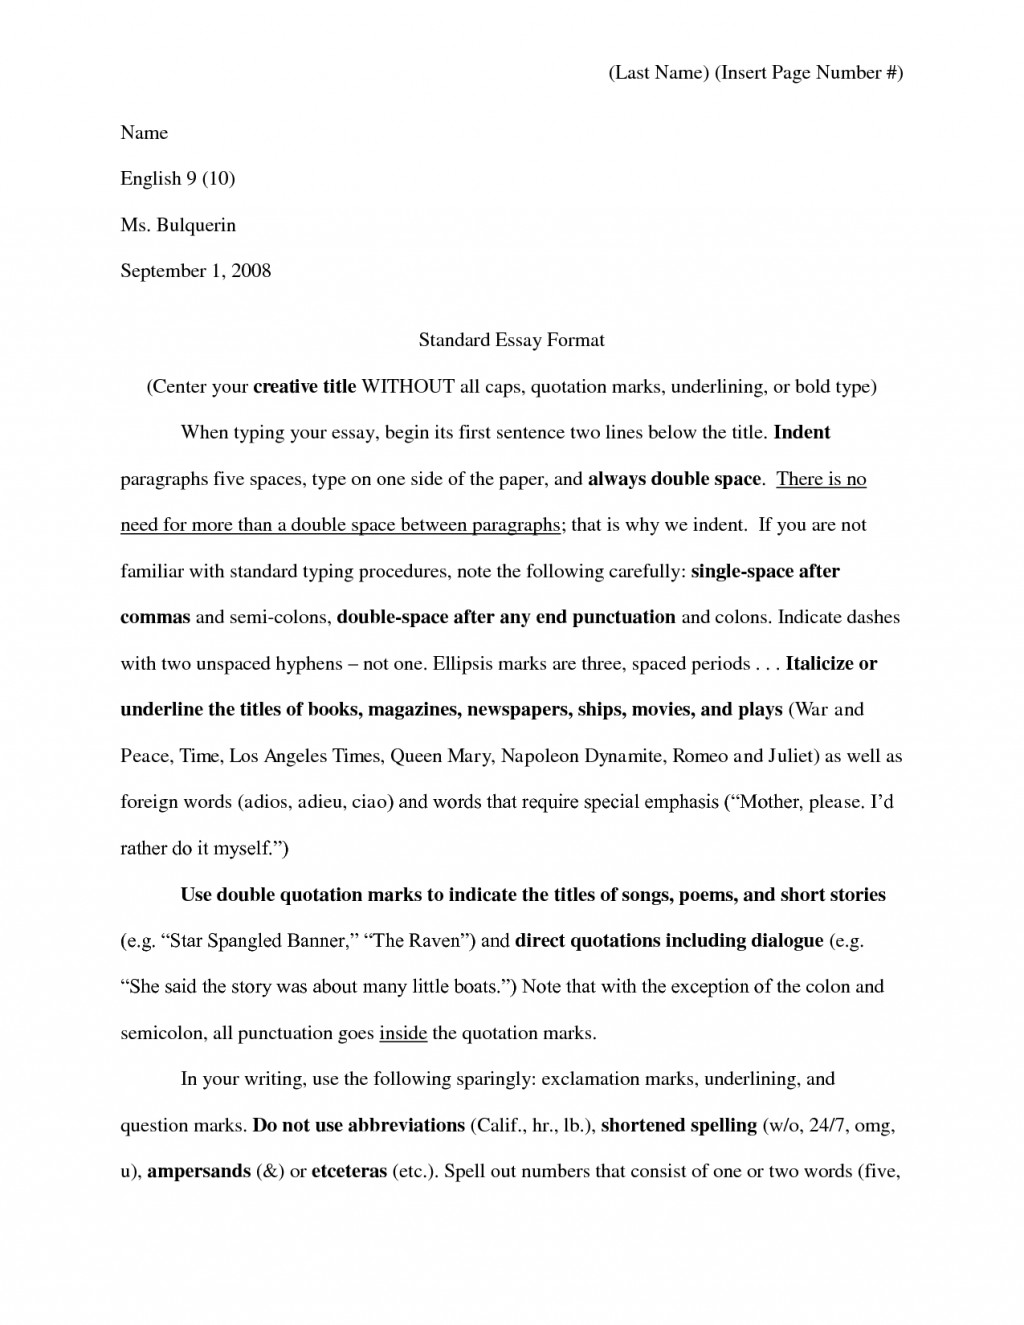 007 Format Of An Essay Awful Outline Apa Example Academic Conclusion Style Large